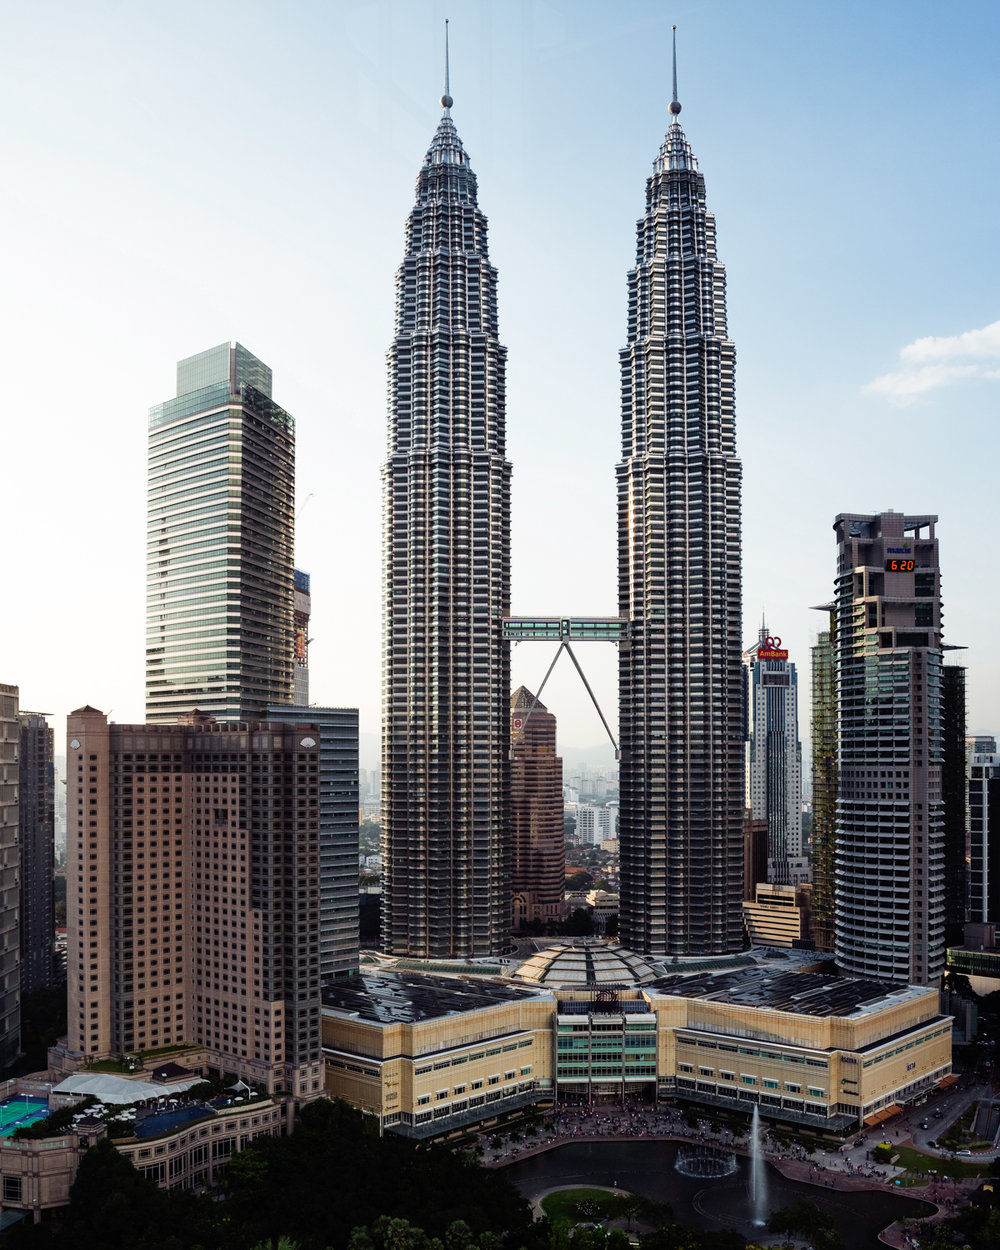 The Petronas Towers.